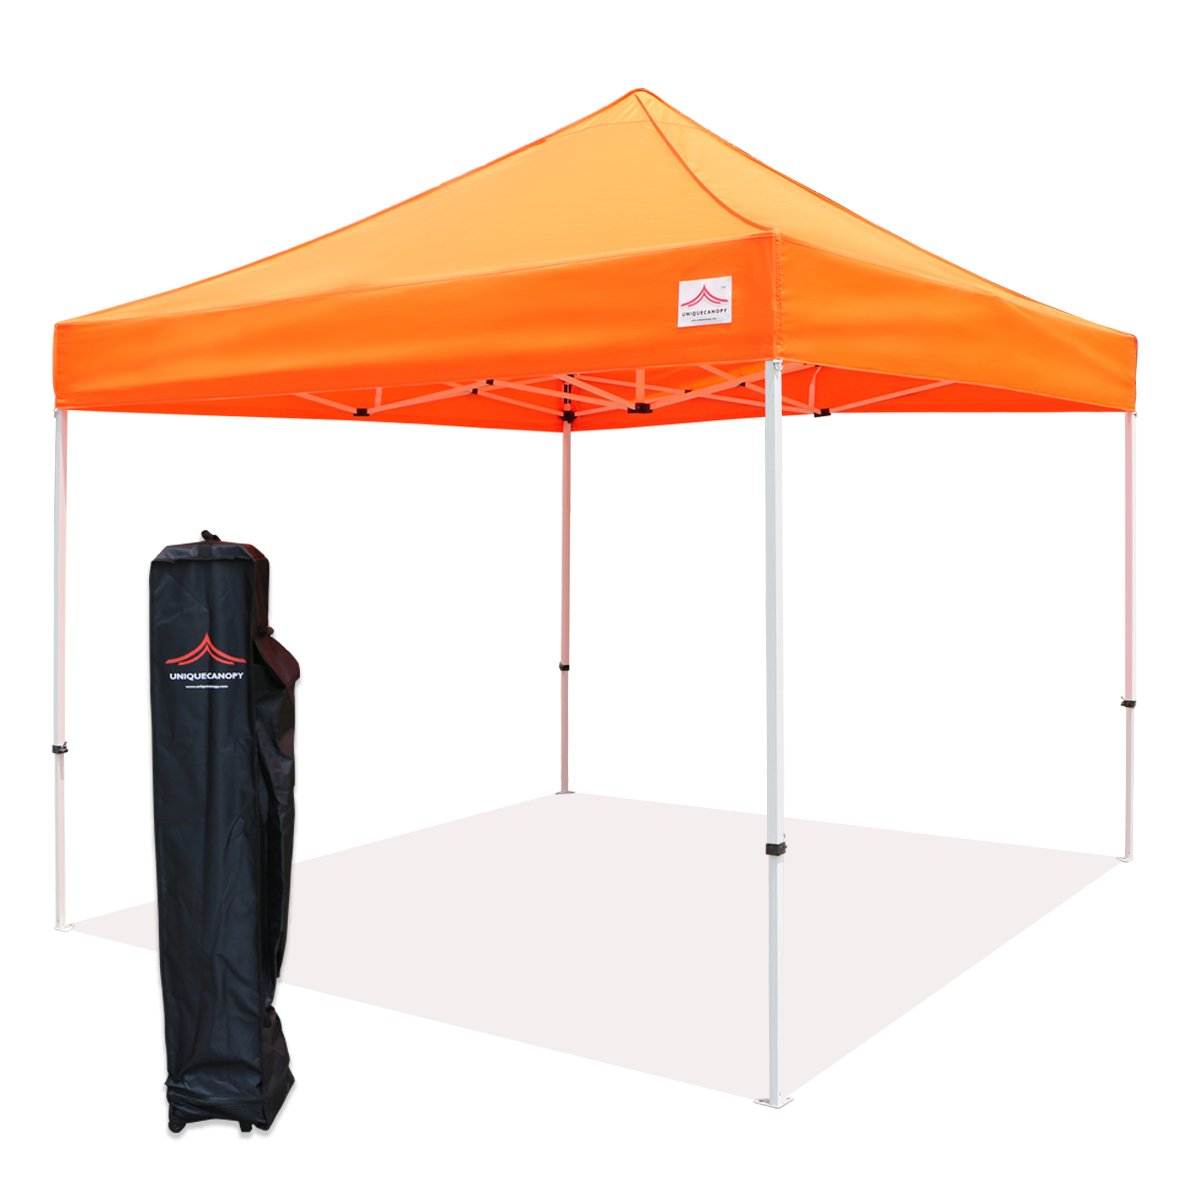 UNIQUECANOPY 10x10 Ez Pop up Canopy Tents for Parties Outdoor Portable Instant Folded Commercial Popup Shelter, with Wheeled Carrying Bag Orange